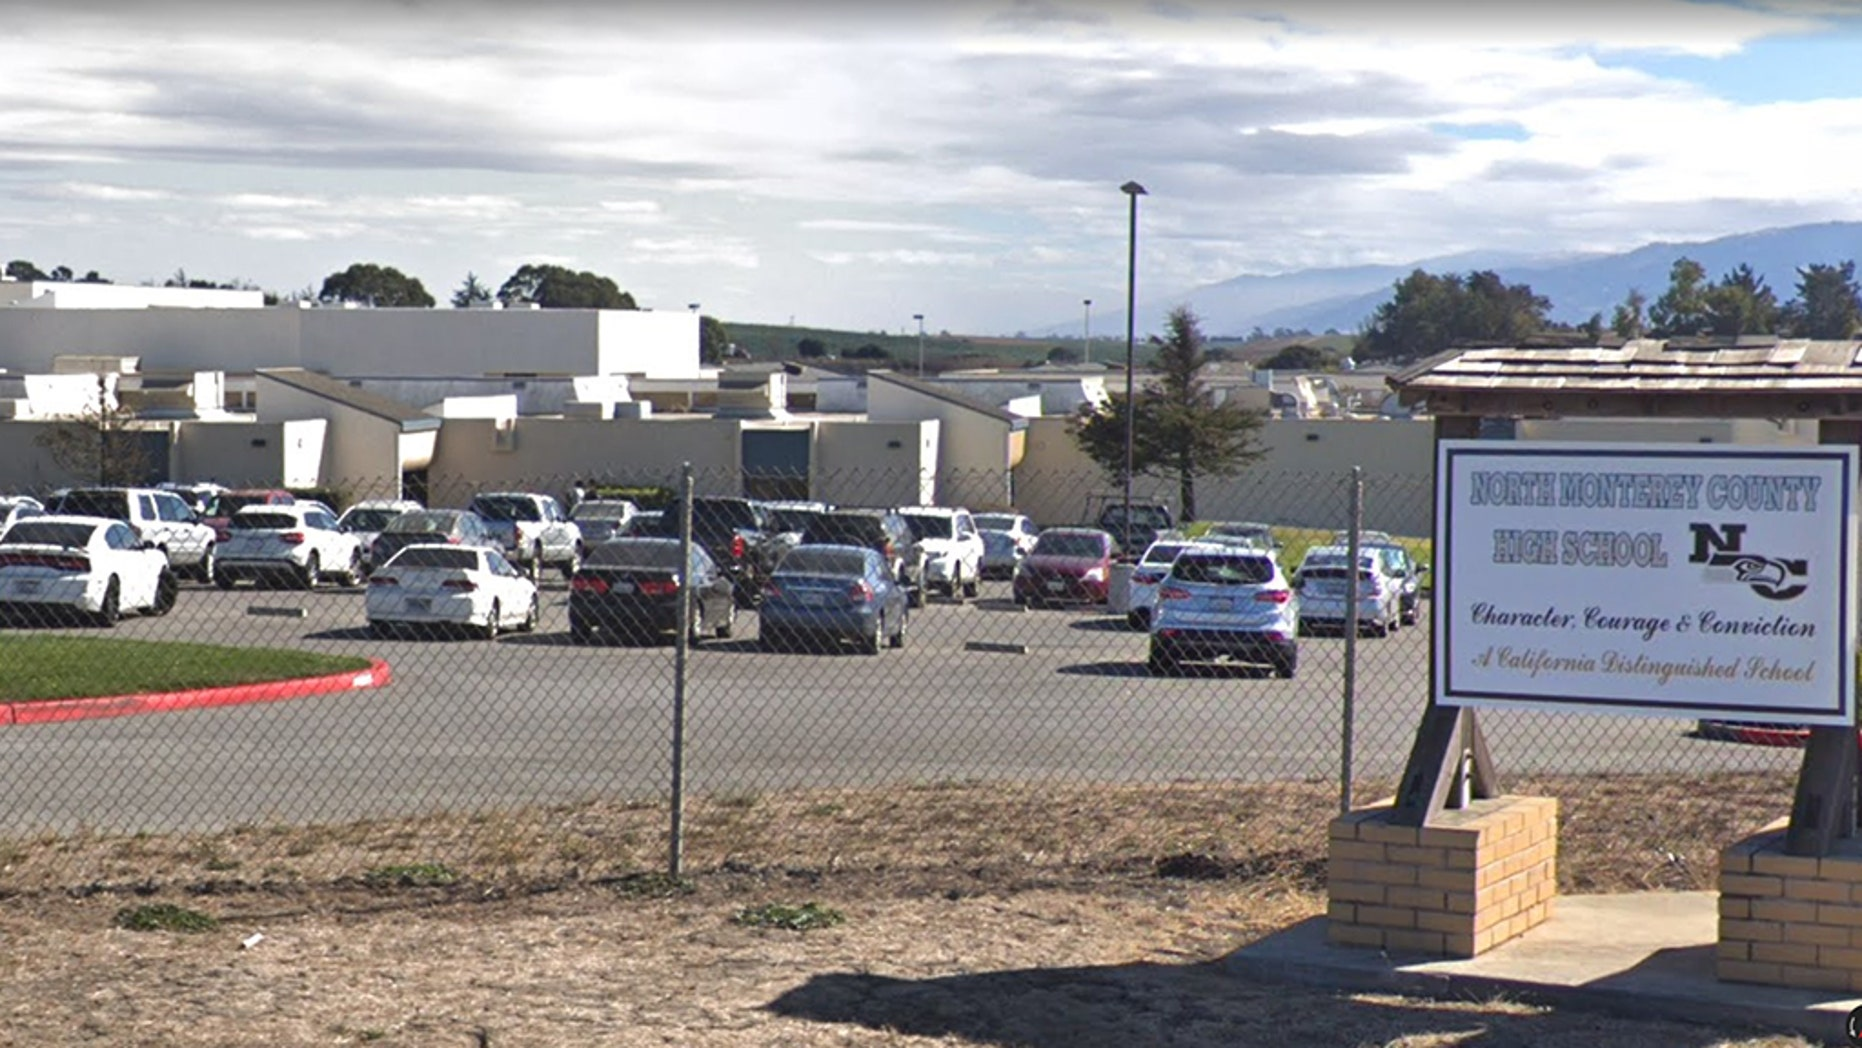 """A senior """"prank"""" at North Monterey County High School in California reportedly stated that the genitalia of all male seniors would need to be inspected."""